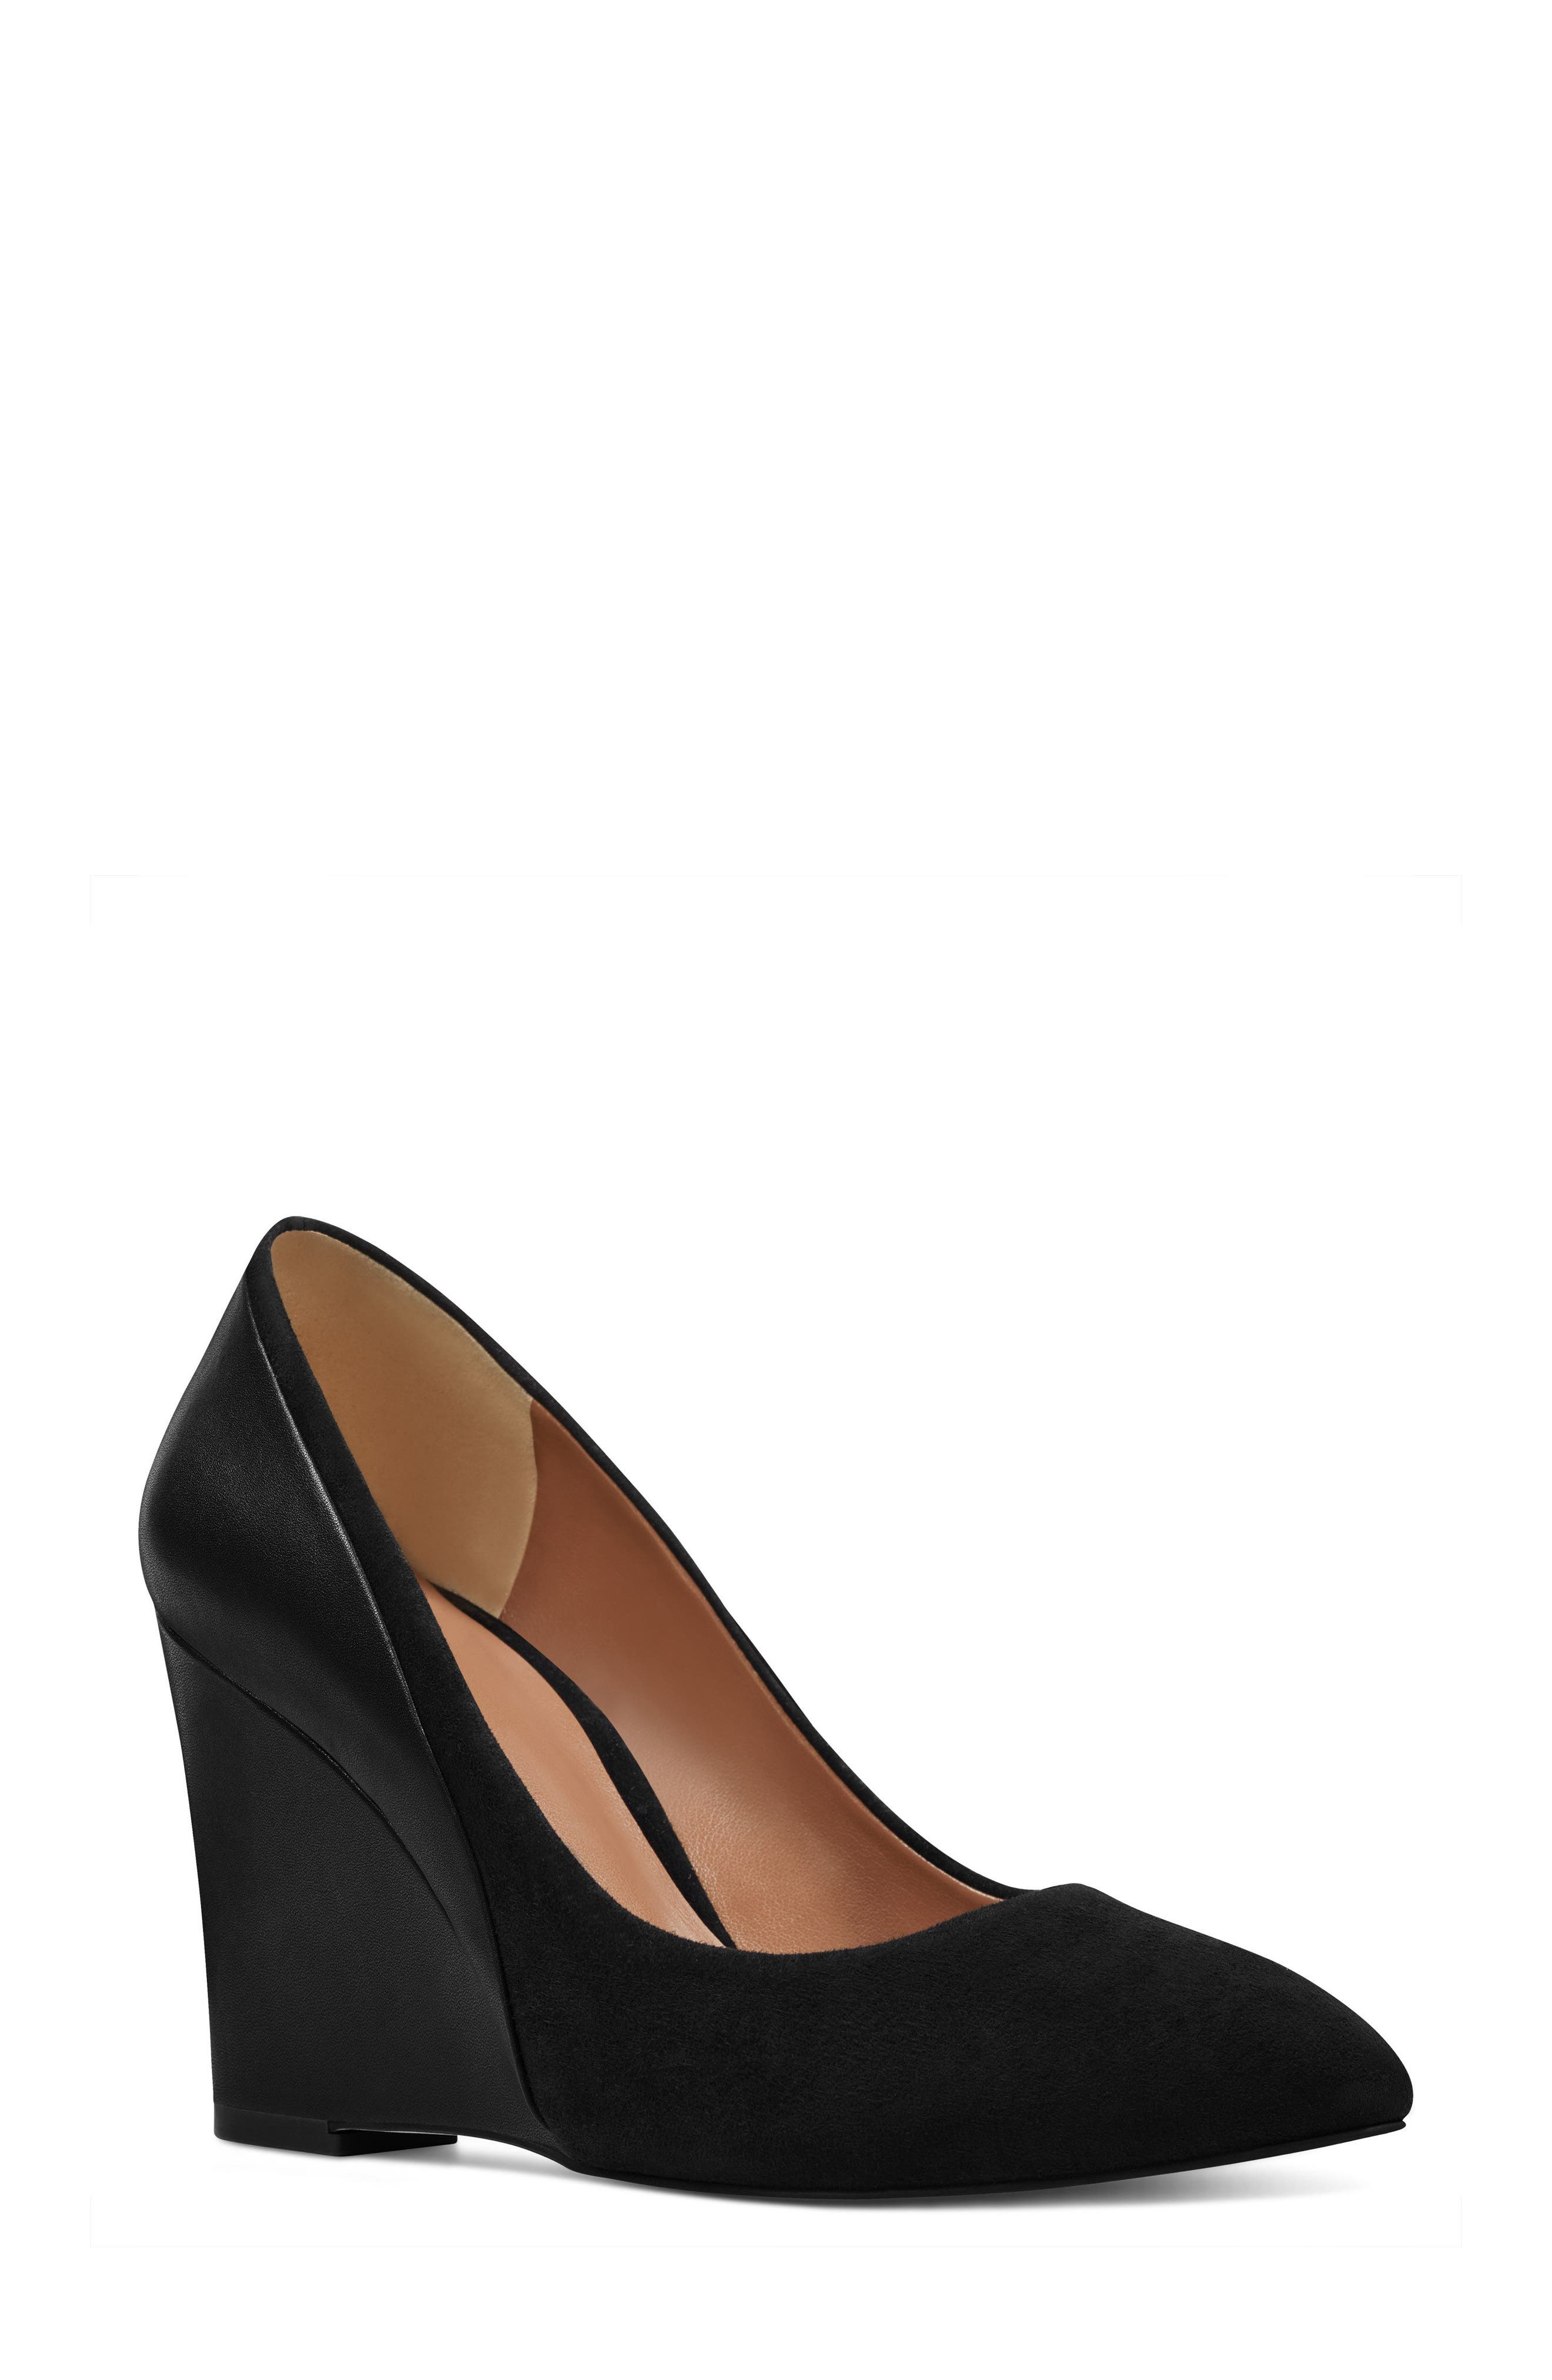 Daday Wedge,                             Main thumbnail 1, color,                             Black/ Black Suede